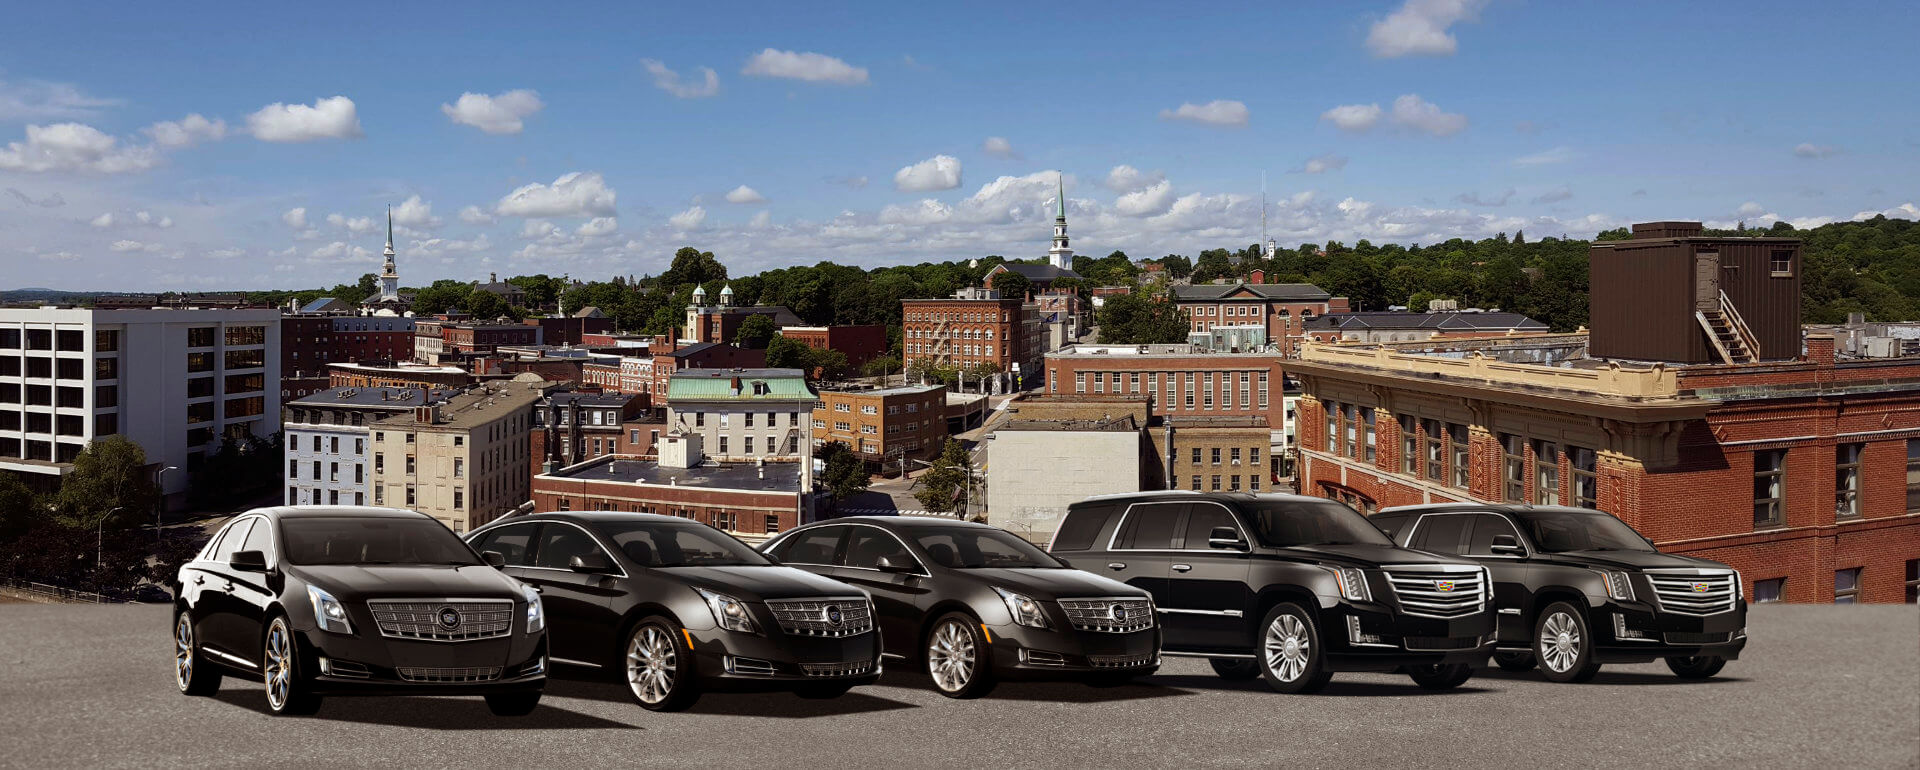 Boston to Bangor Maine Limo Service